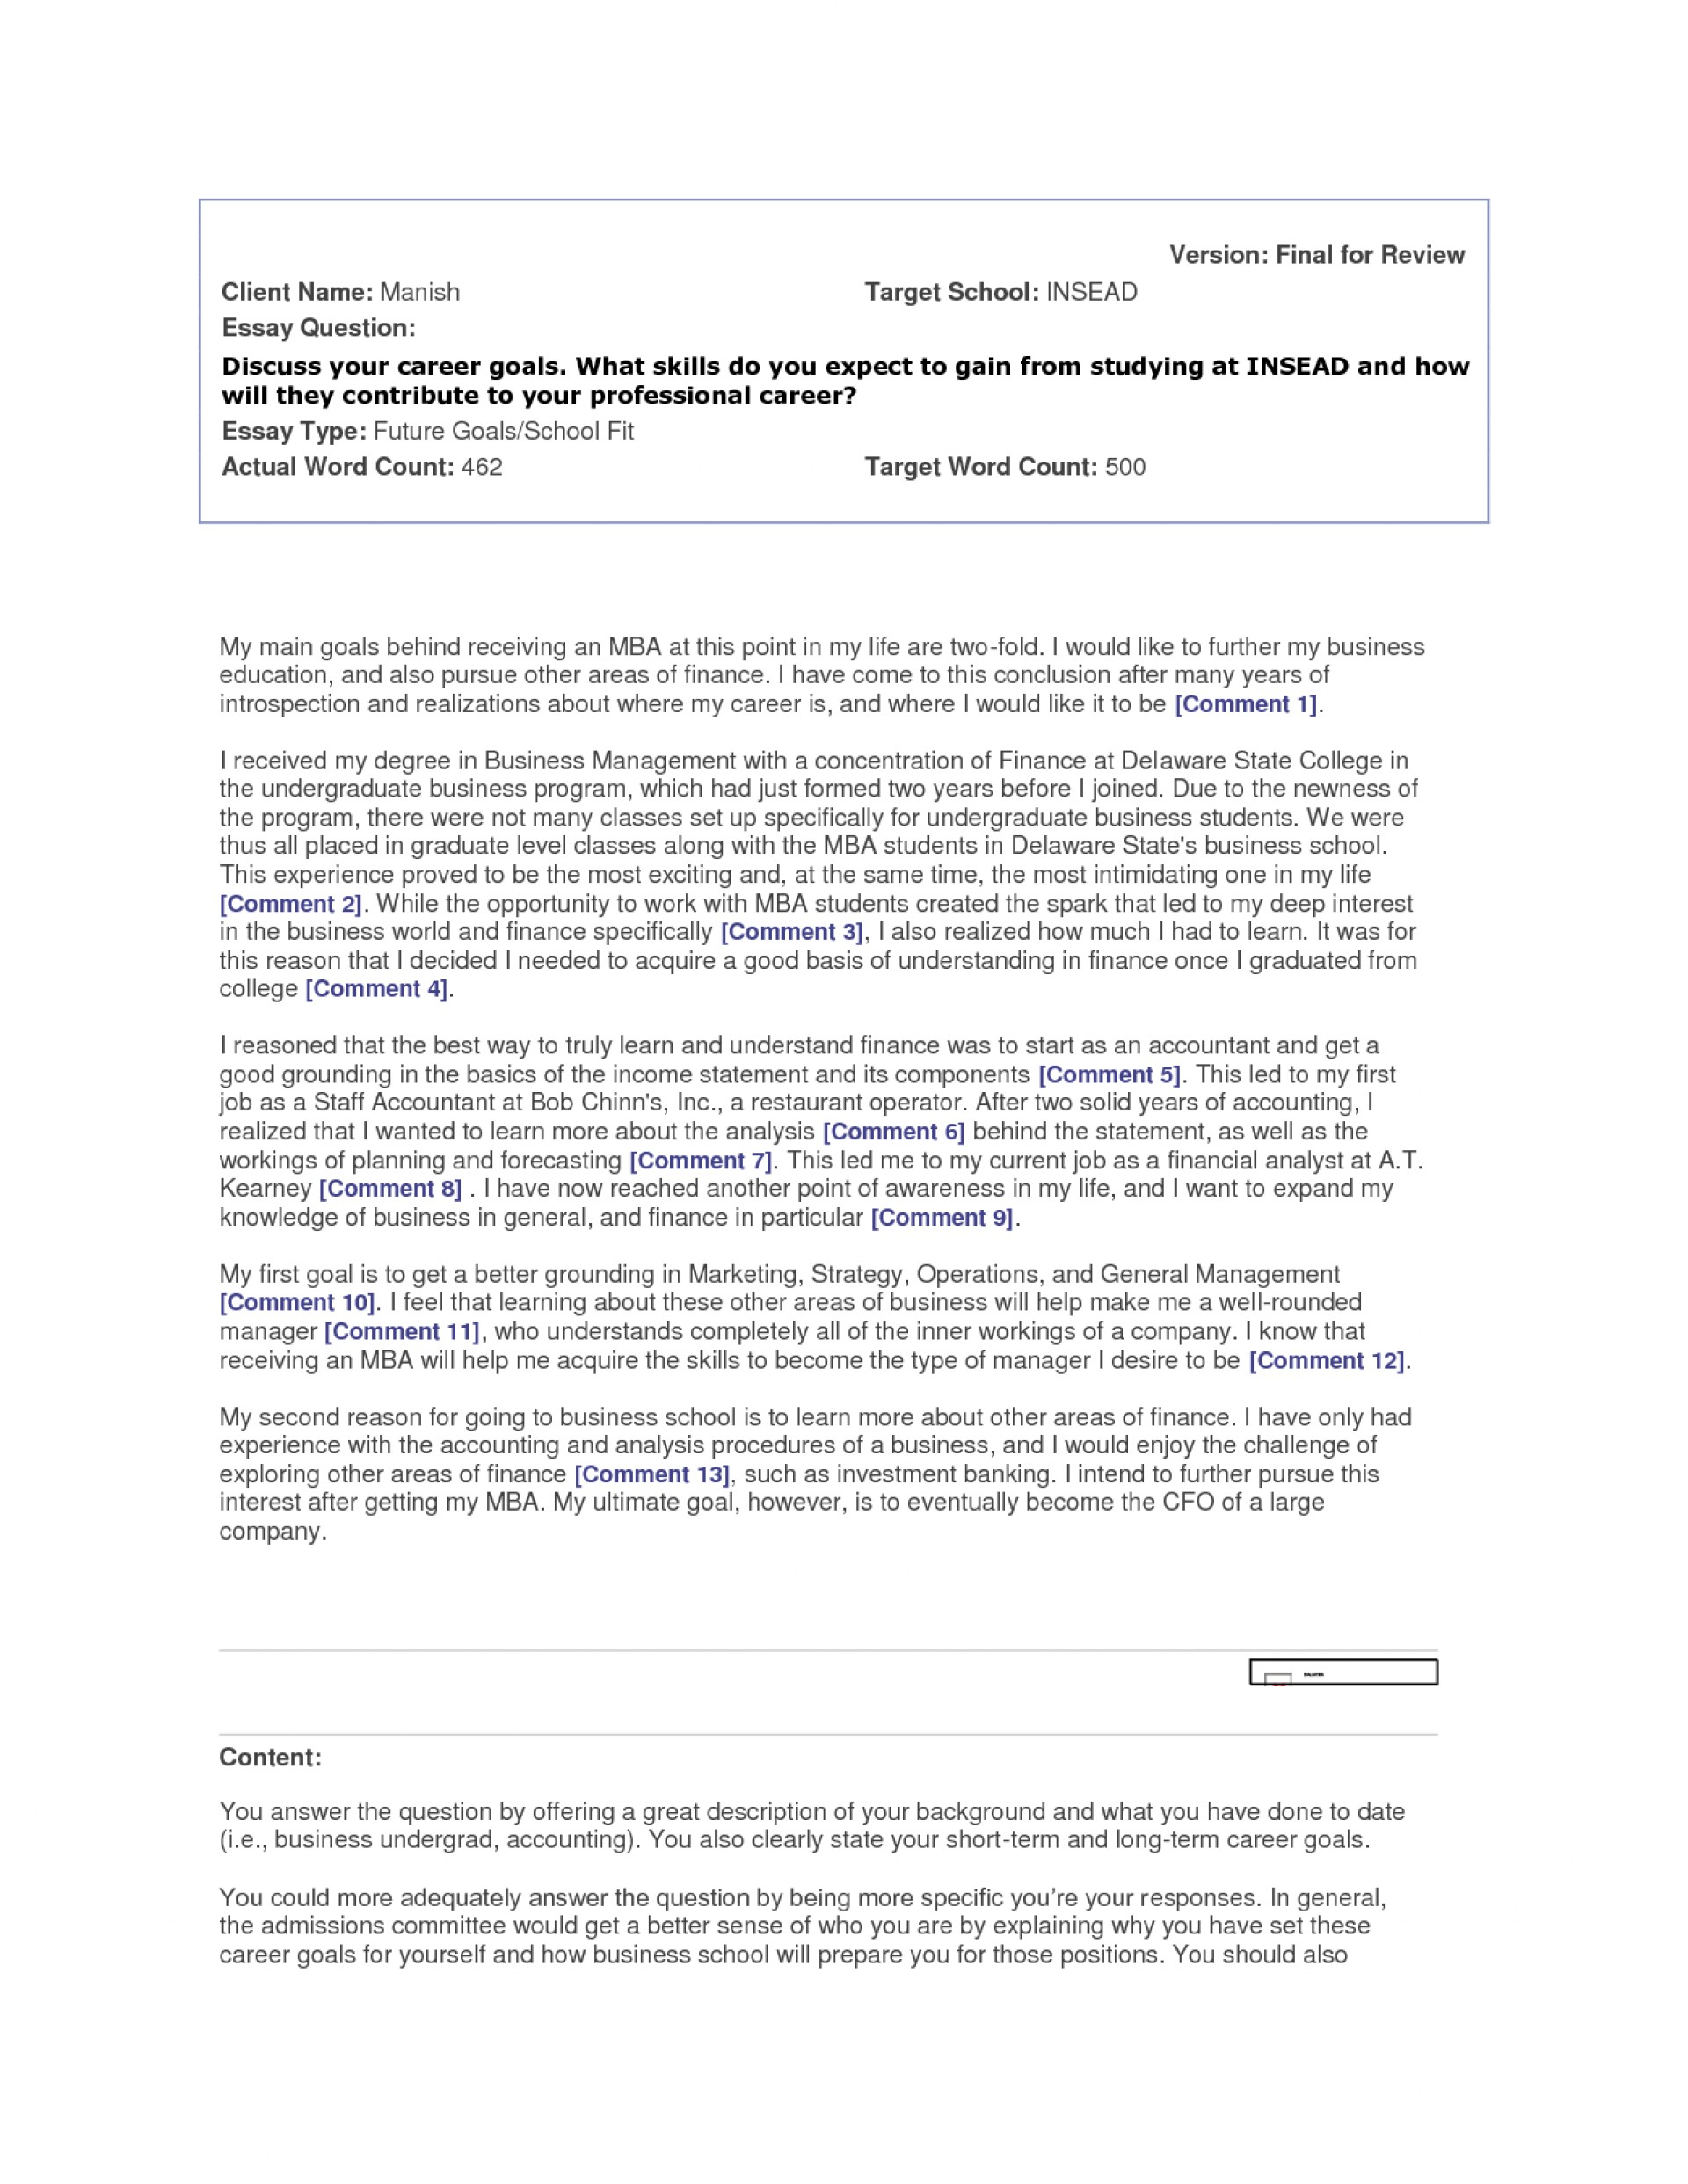 010 Essay Example On Breathtaking Career Goals And Aspirations Sample Choosing A Path 1920